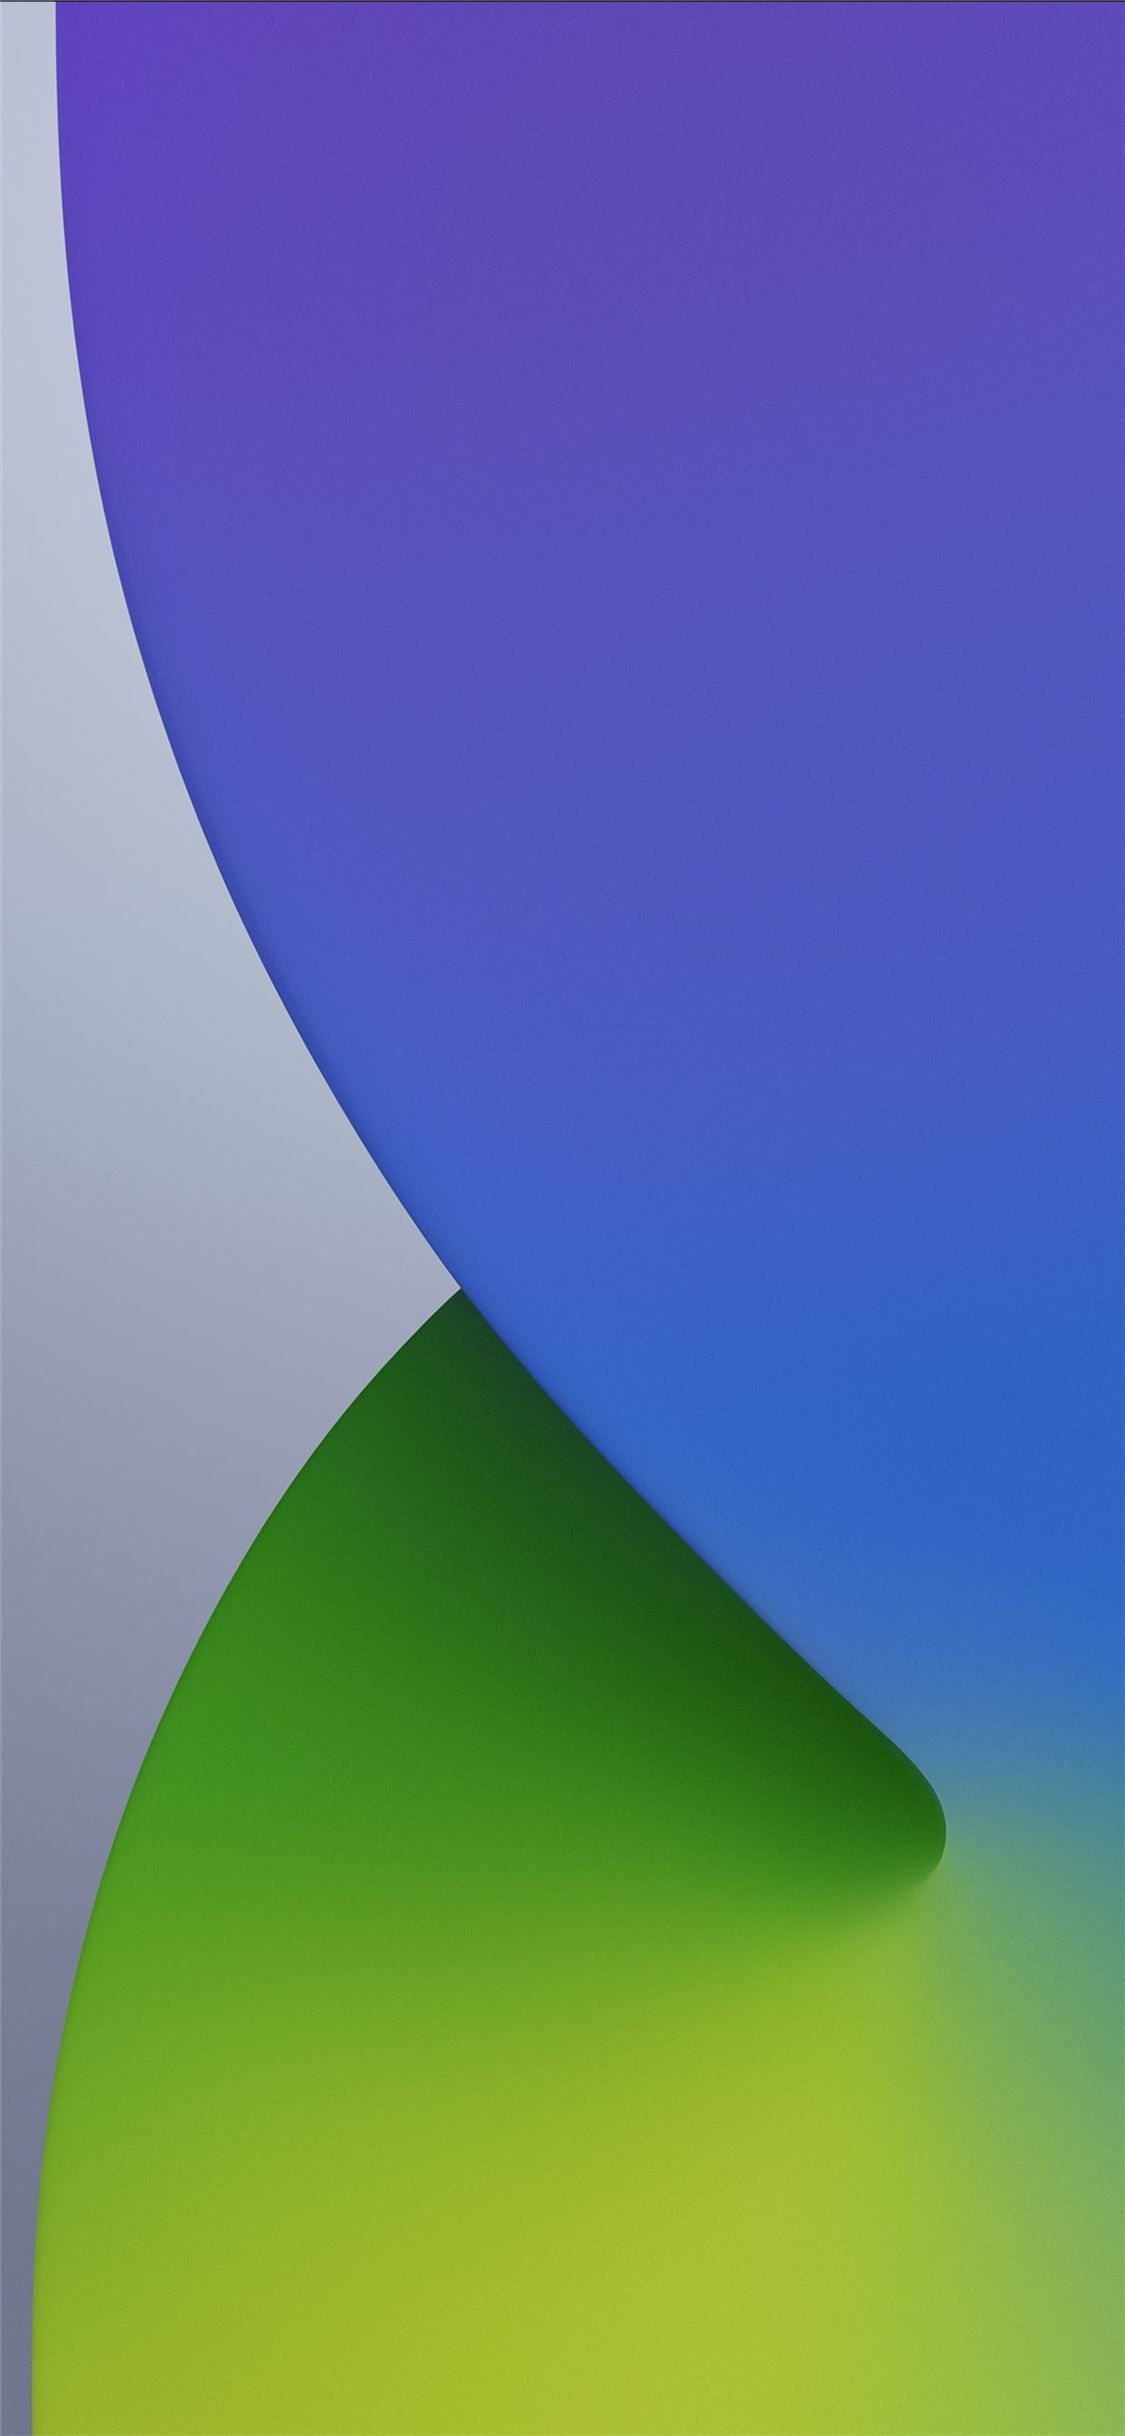 Ios 14 Stock Wallpaper Cool Light Ios14stockwallpaper Wwdc2020 Aesthetic Apple Iph In 2020 Abstract Iphone Wallpaper Wallpaper Display Iphone Background Wallpaper